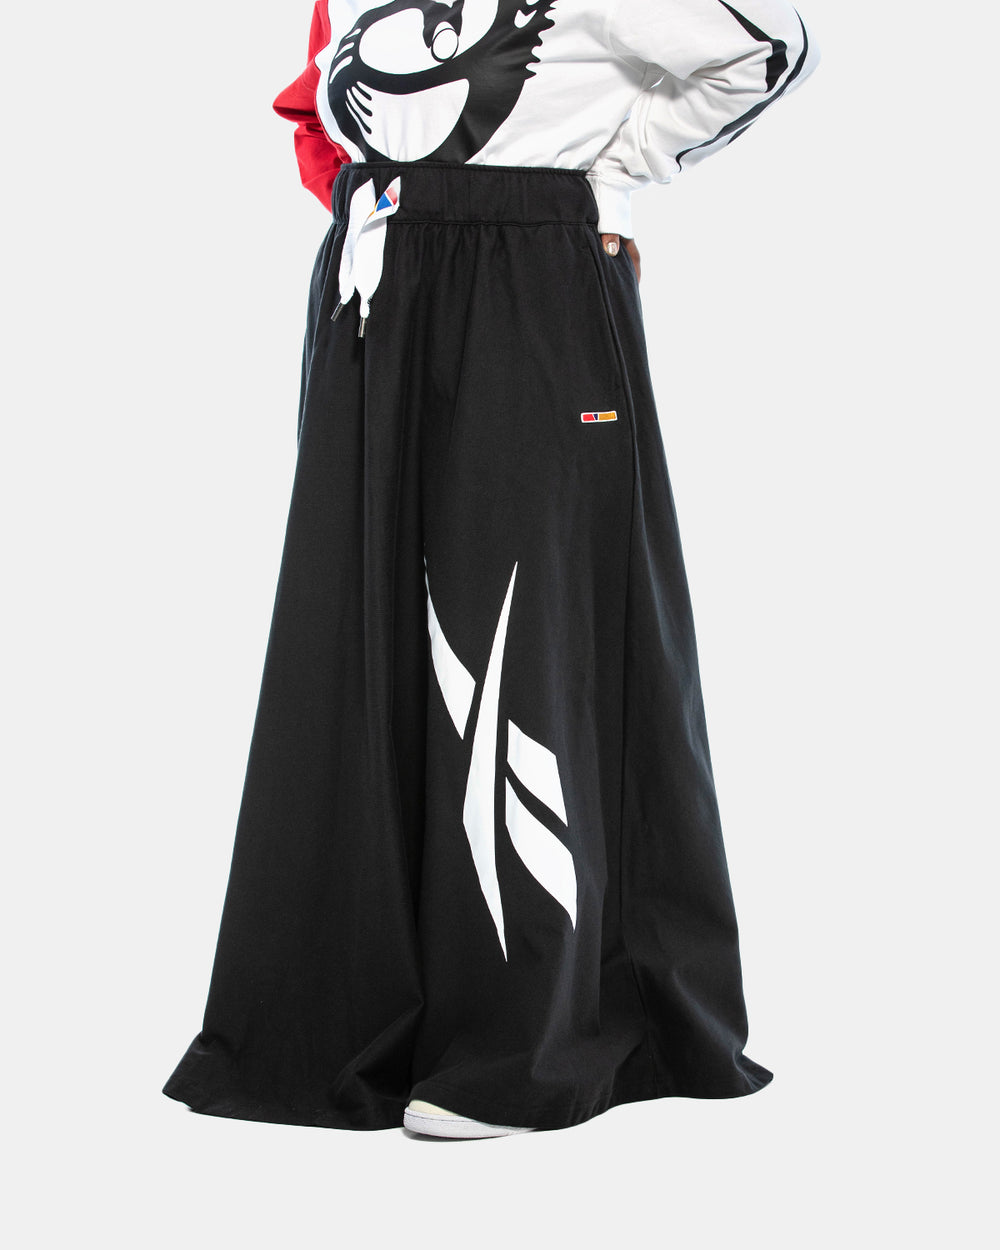 Reebok - Women's Reebok x Pyer Moss Long Skirt (Black)